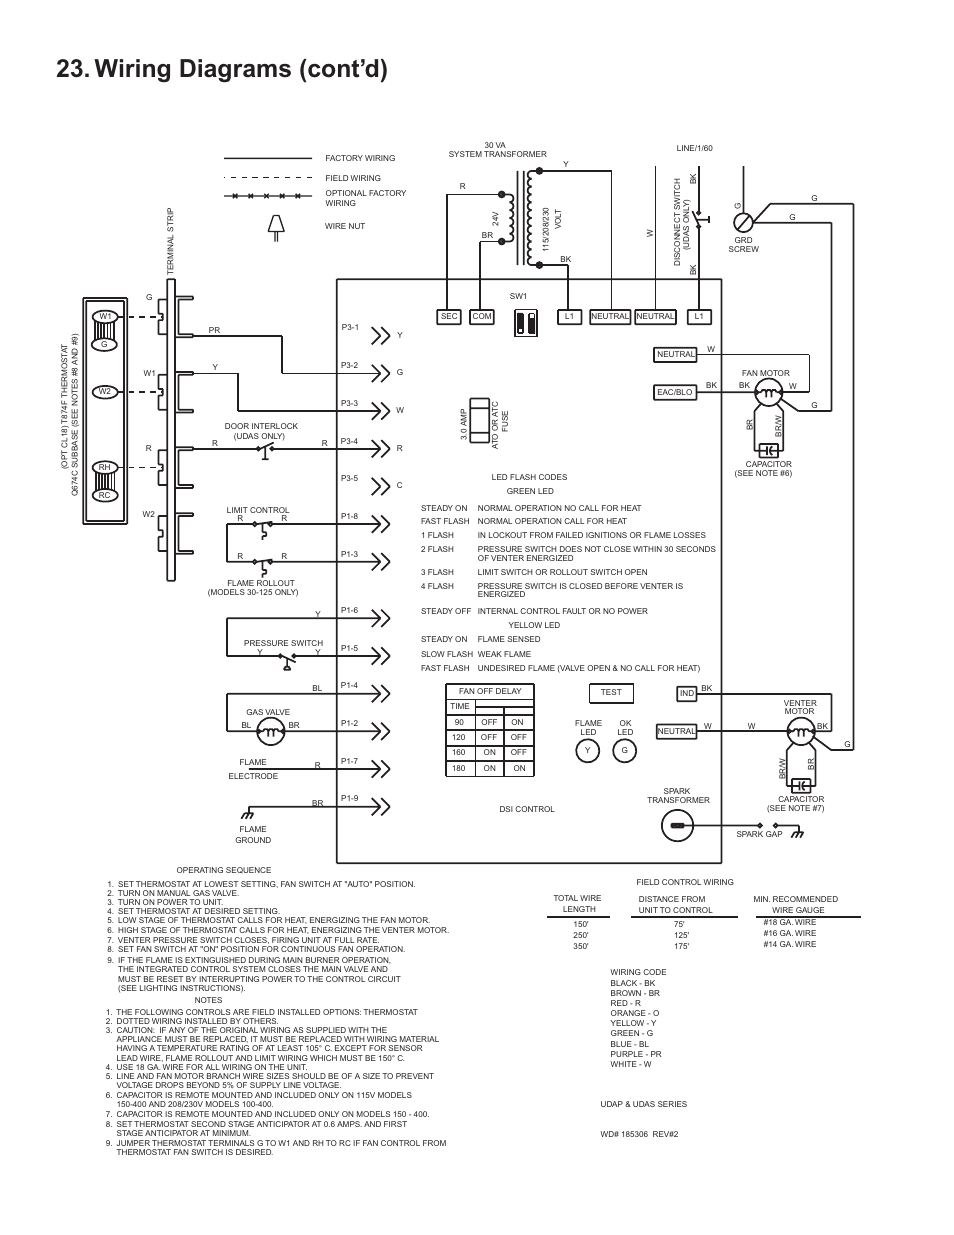 Thomas Betts Wiring Diagram College Built Buses Logo Diagrams Contd Udap User Manual Page